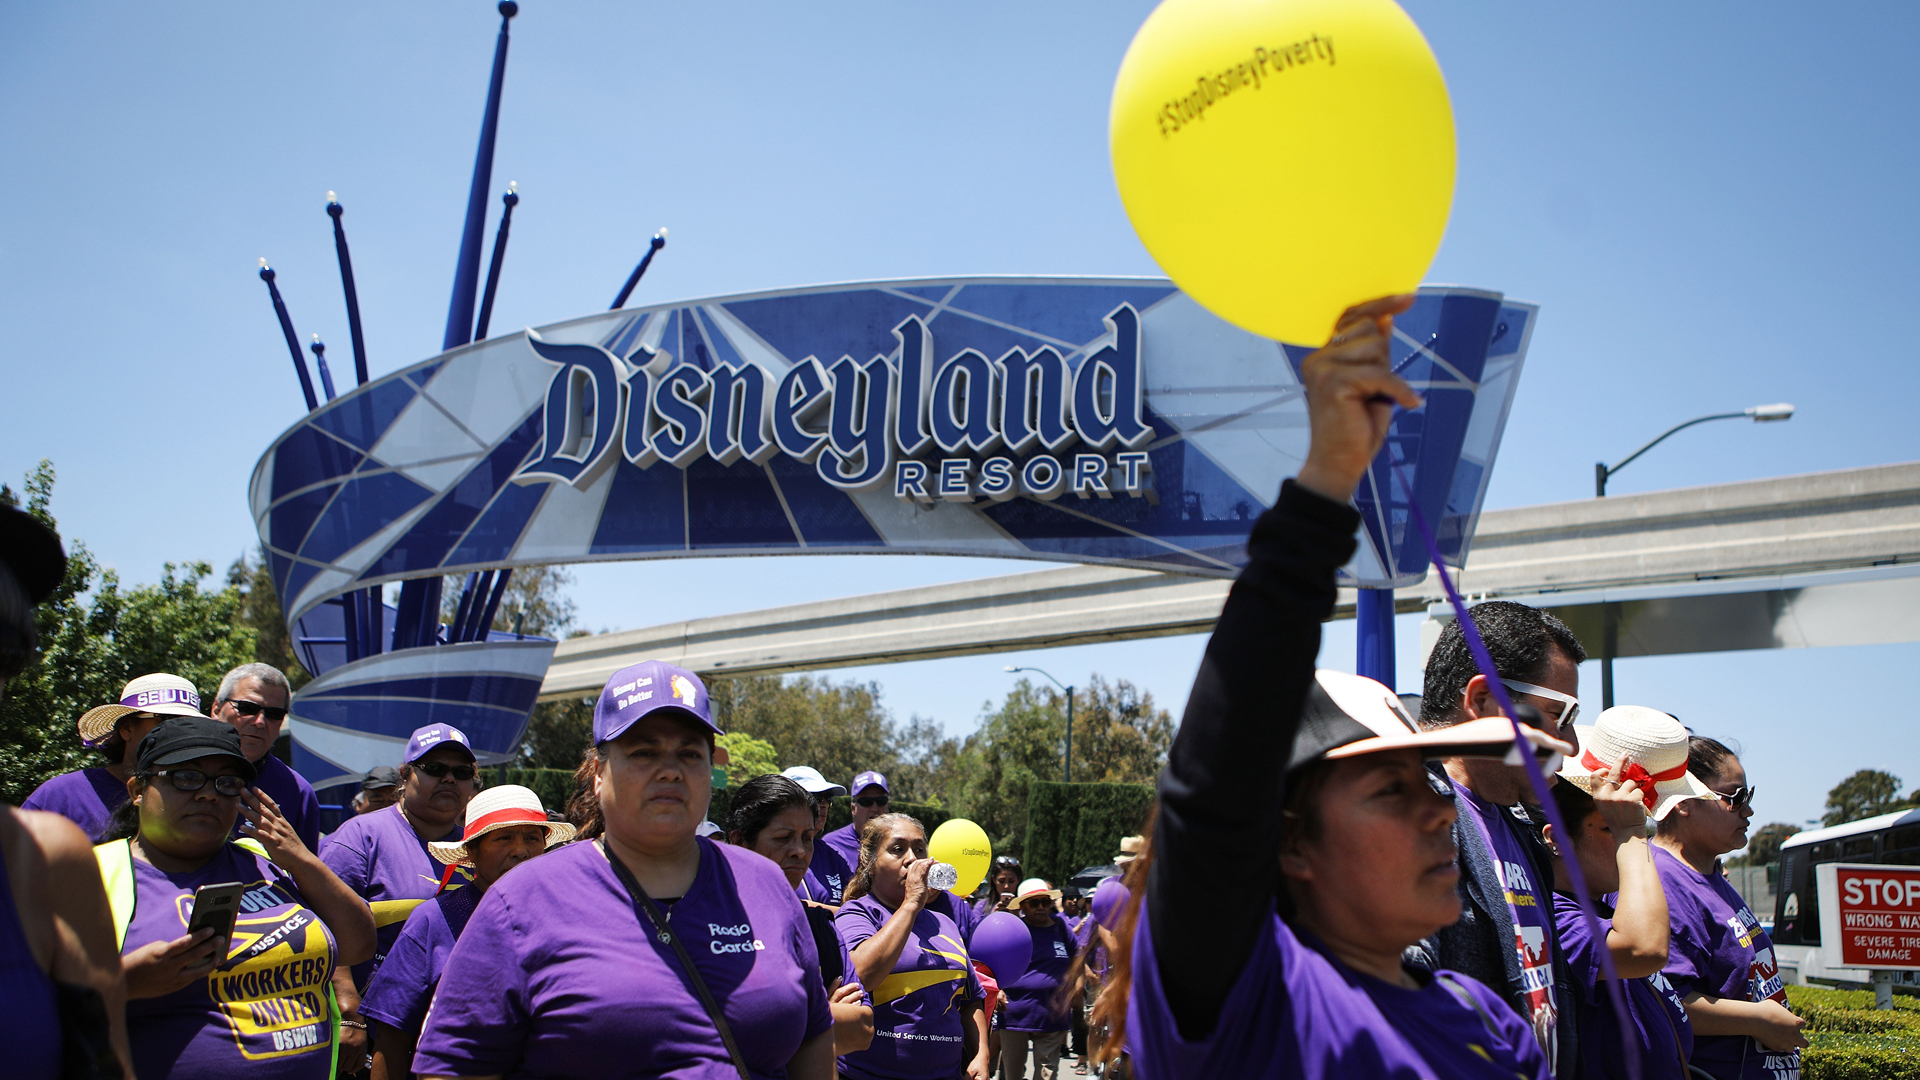 Disneyland workers and supporters march while protesting low pay and calling for a living wage at the Disneyland entrance on July 3, 2018 in Anaheim. (Credit: Mario Tama/Getty Images)